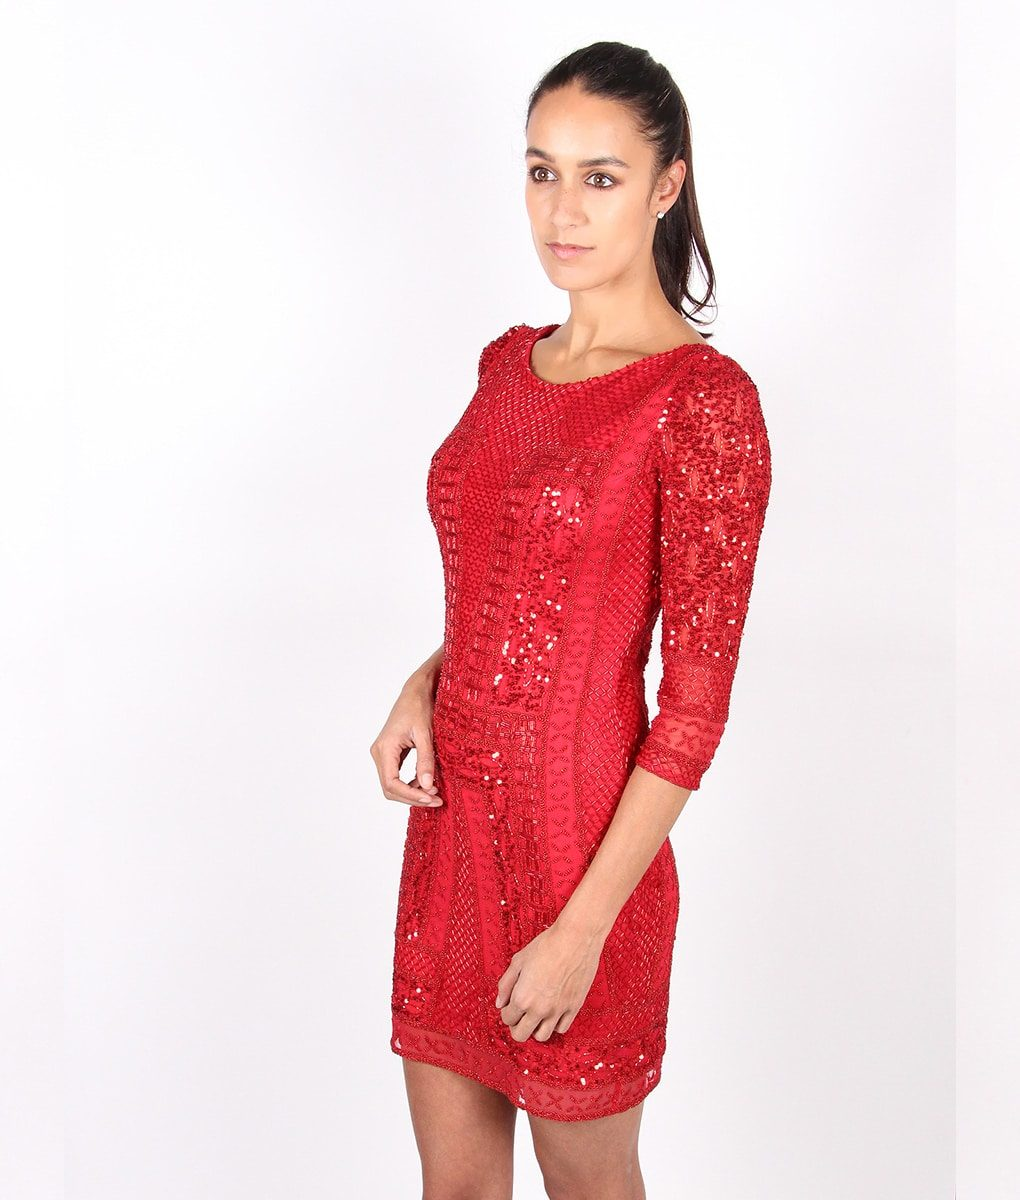 Alila-Red-Long-sleeve-Sequin-cocktail-dress-by-Scala